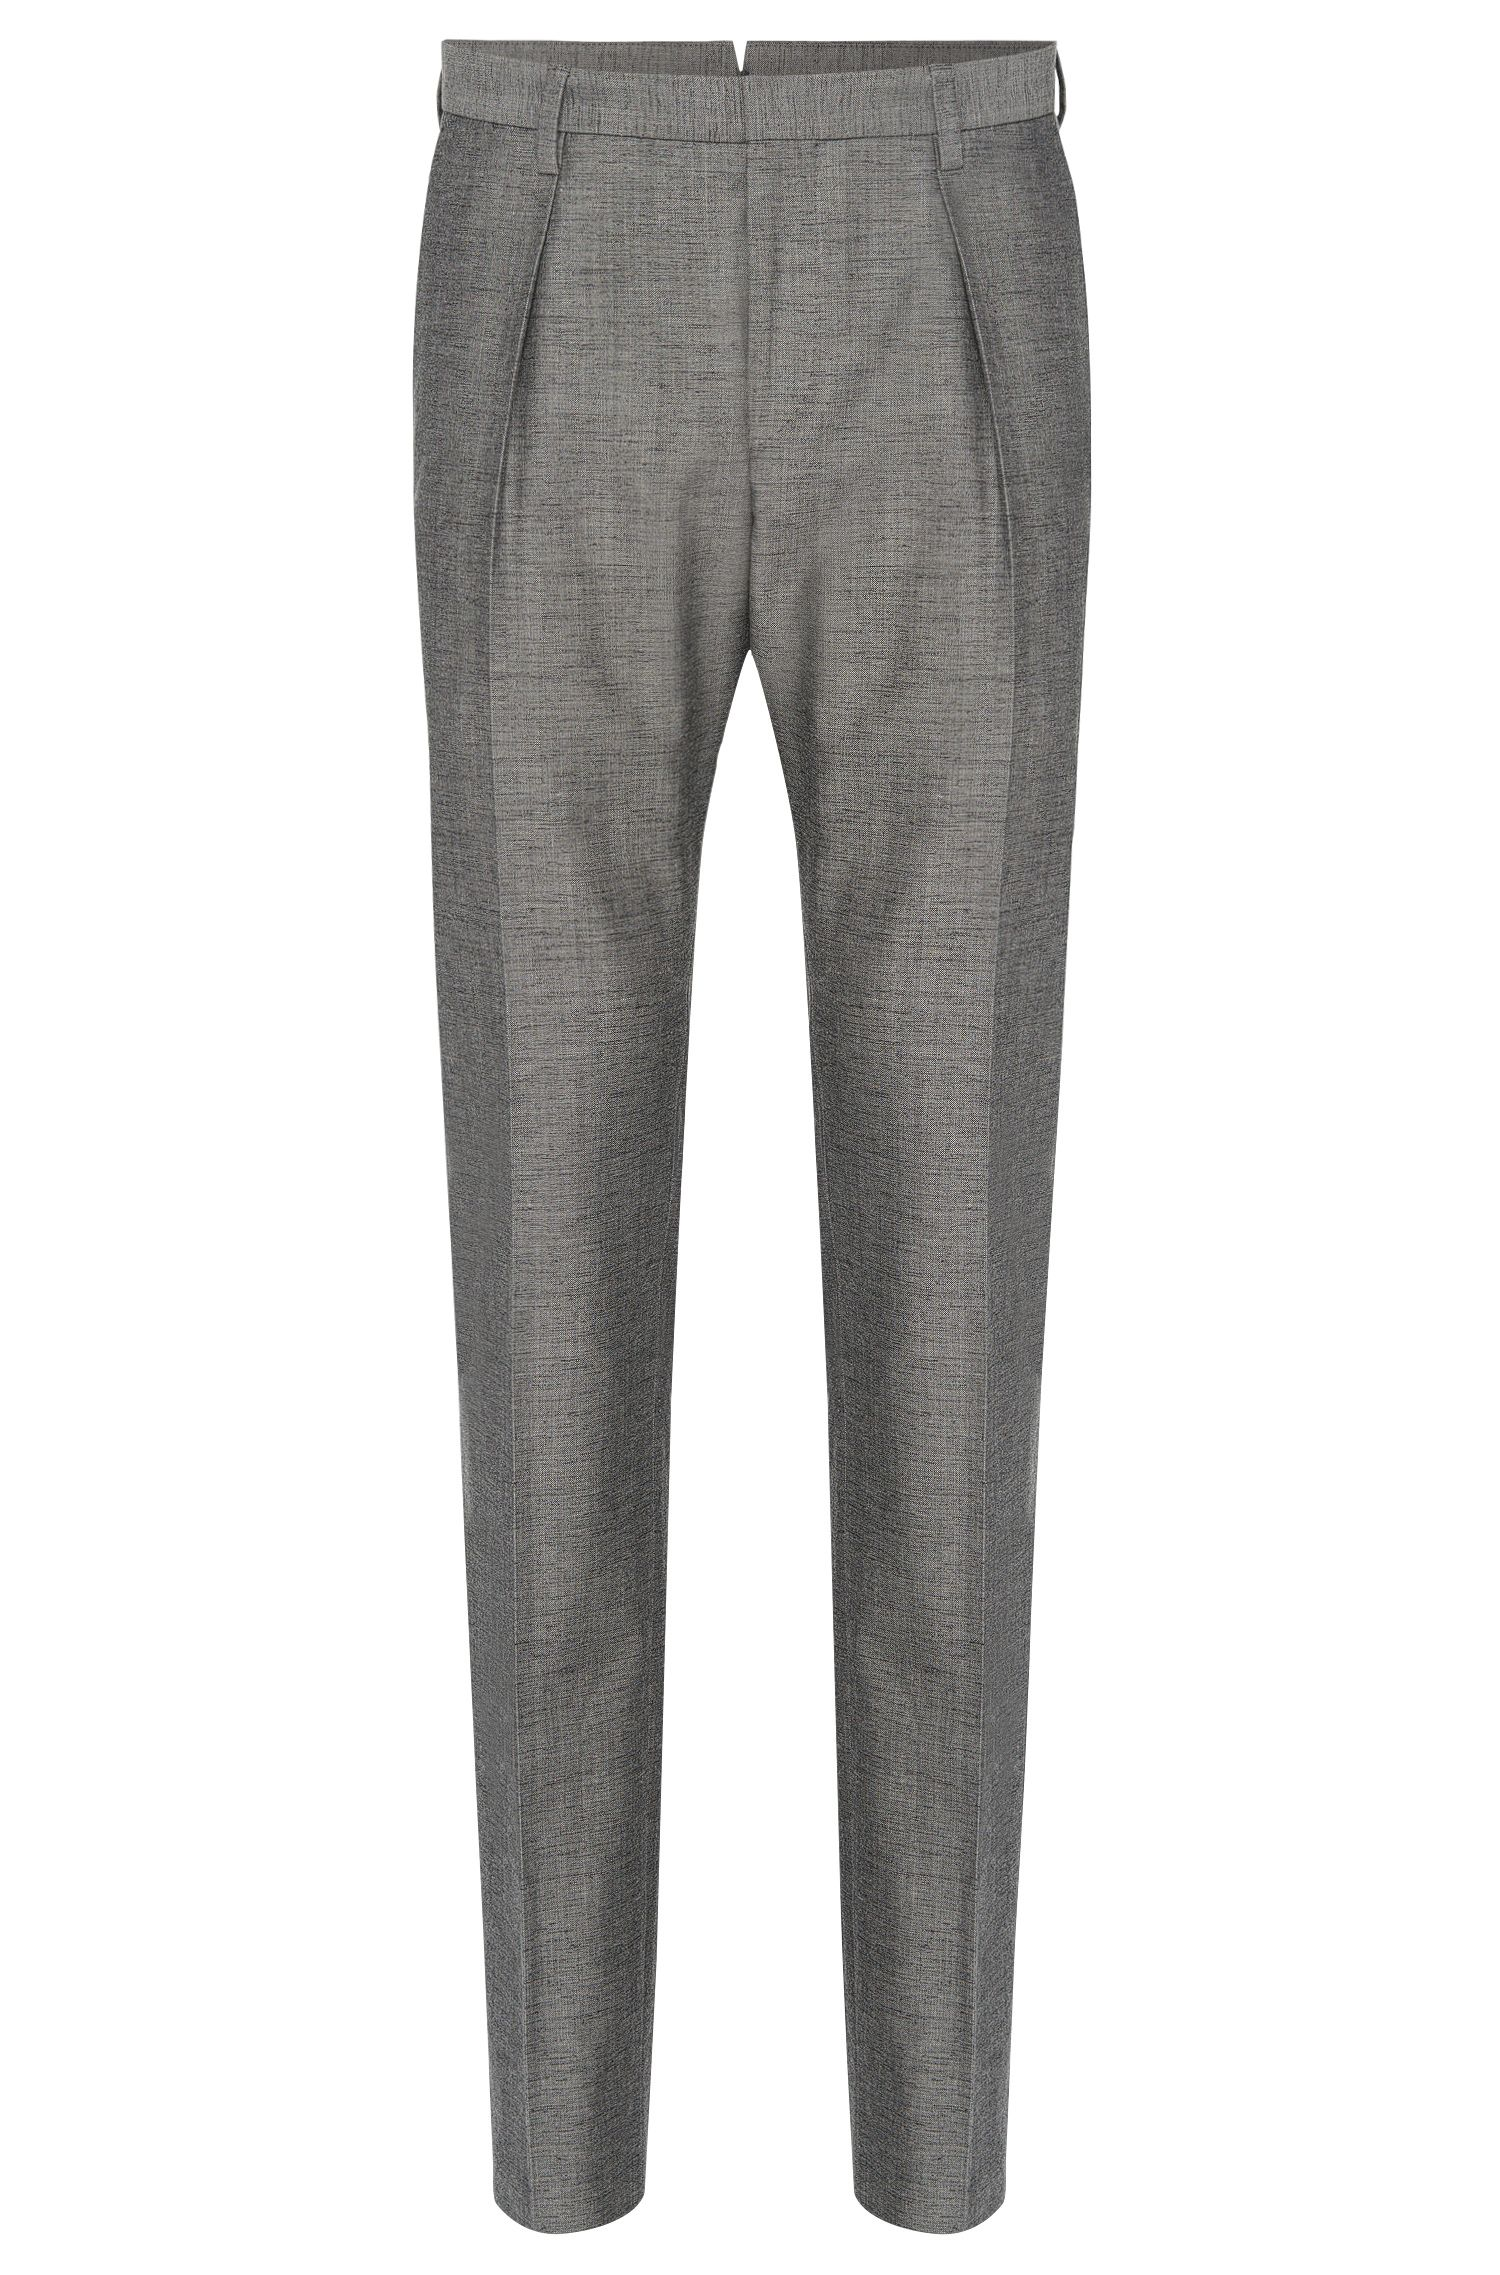 Melierte Slim-Fit Tailored Hose aus Schurwoll-Mix mit Baumwolle: 'T-Gilman'